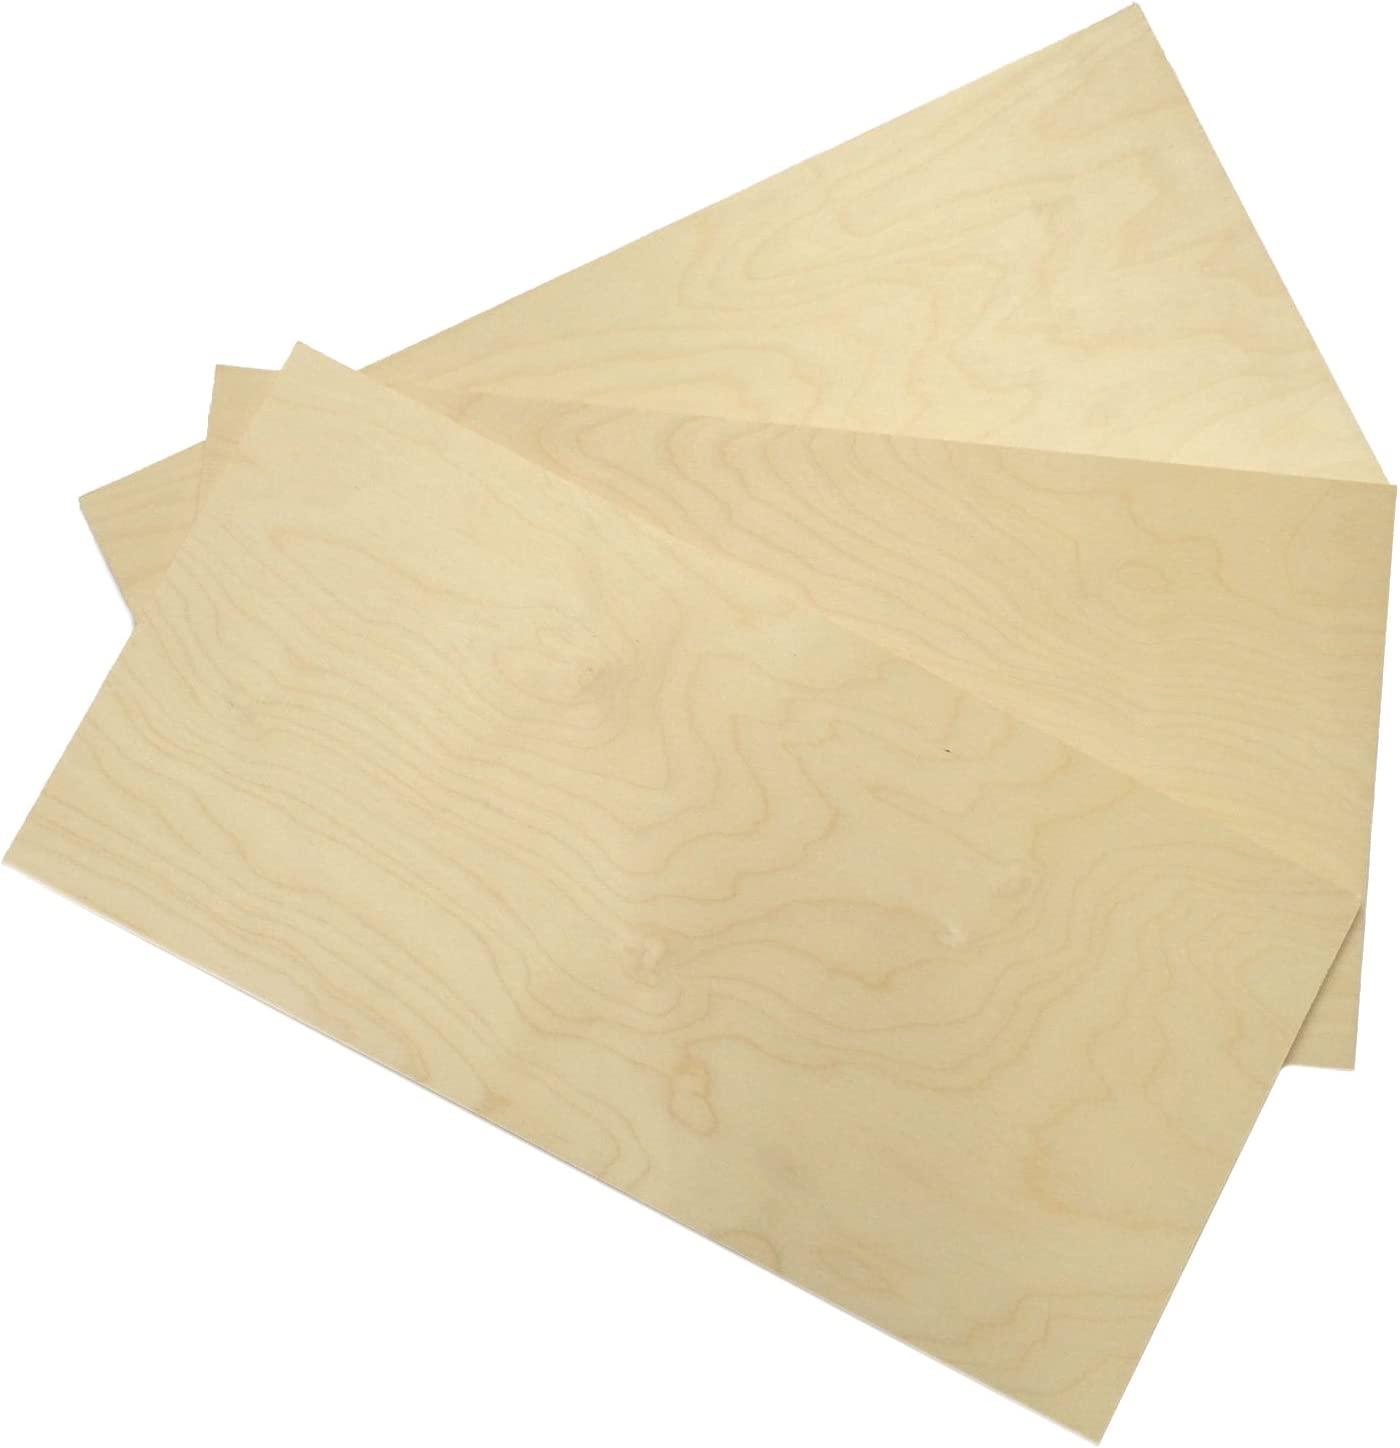 Plywood 610 X 305 X 1 5mm Pack Of 3 Amazon Co Uk Kitchen Home